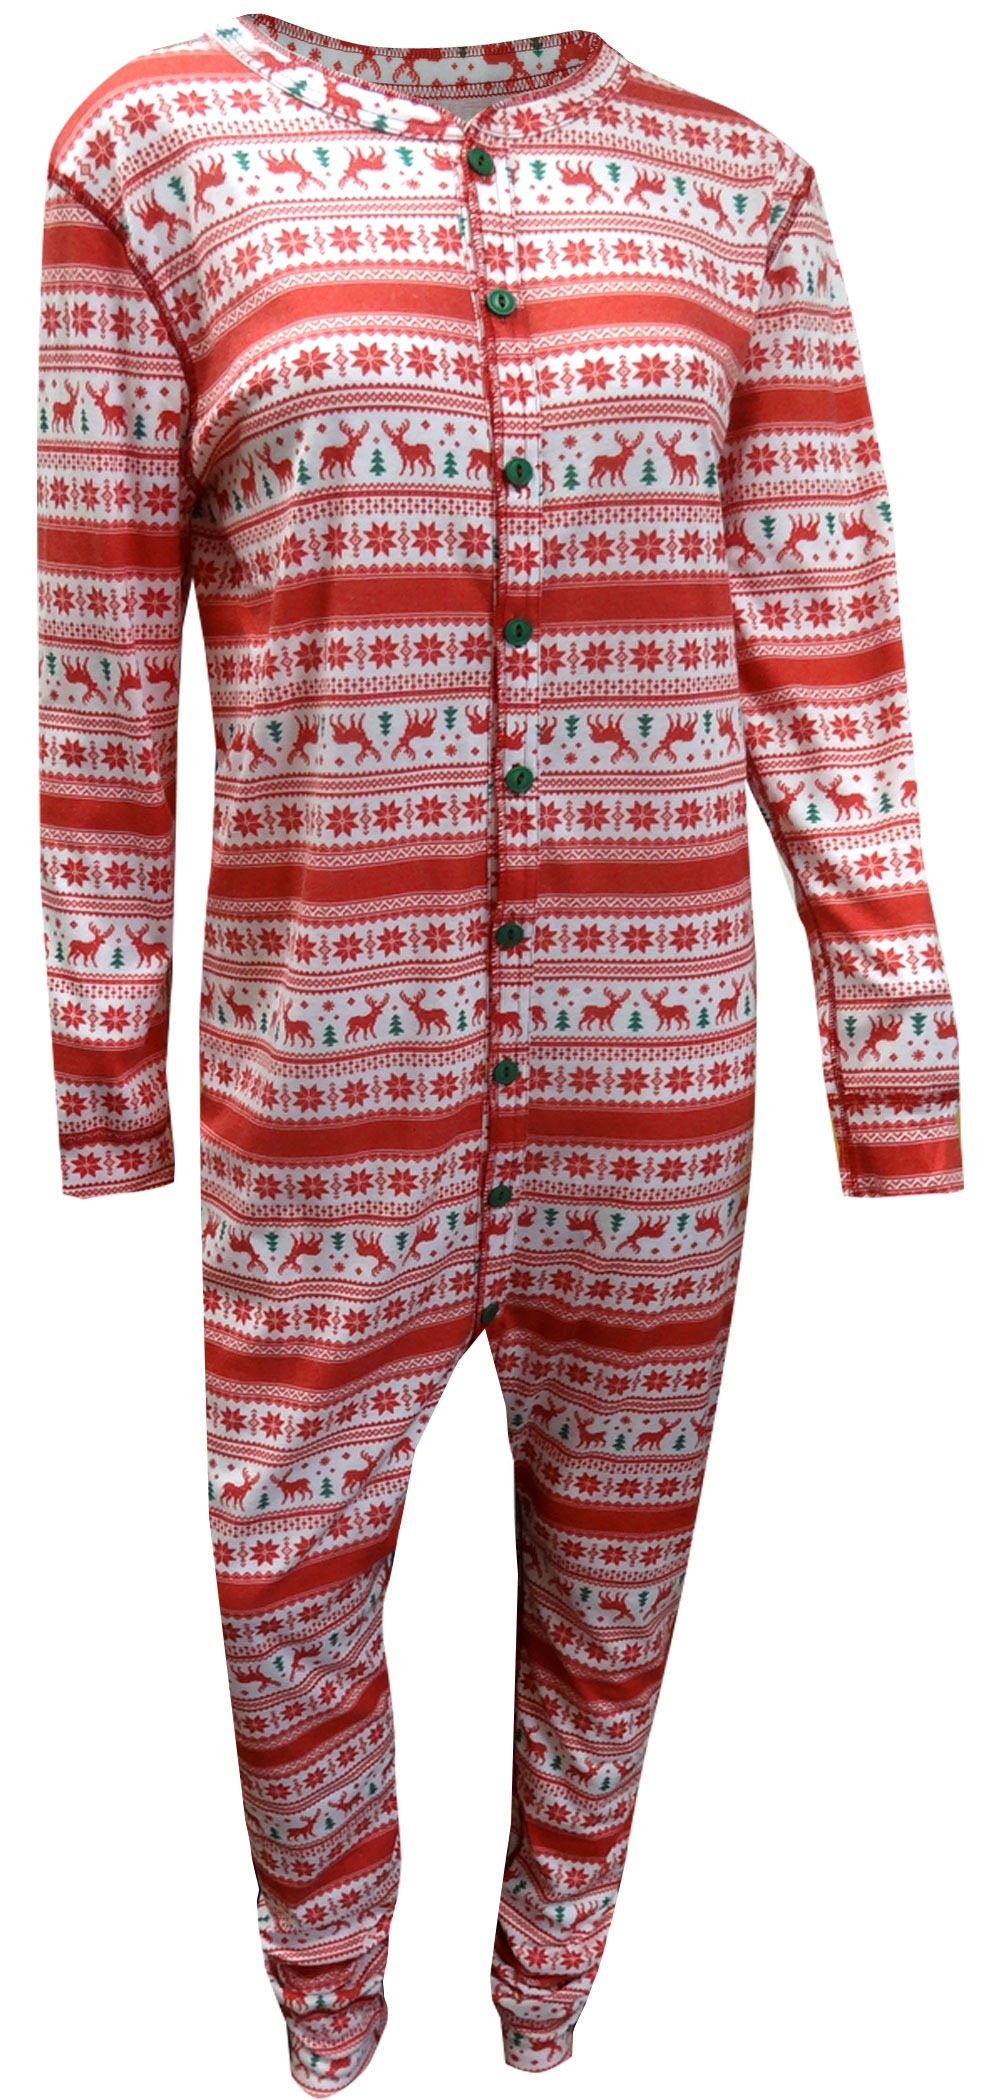 Image of Reindeer Holiday Sweater Union Suit Pajama With Drop Seat for men